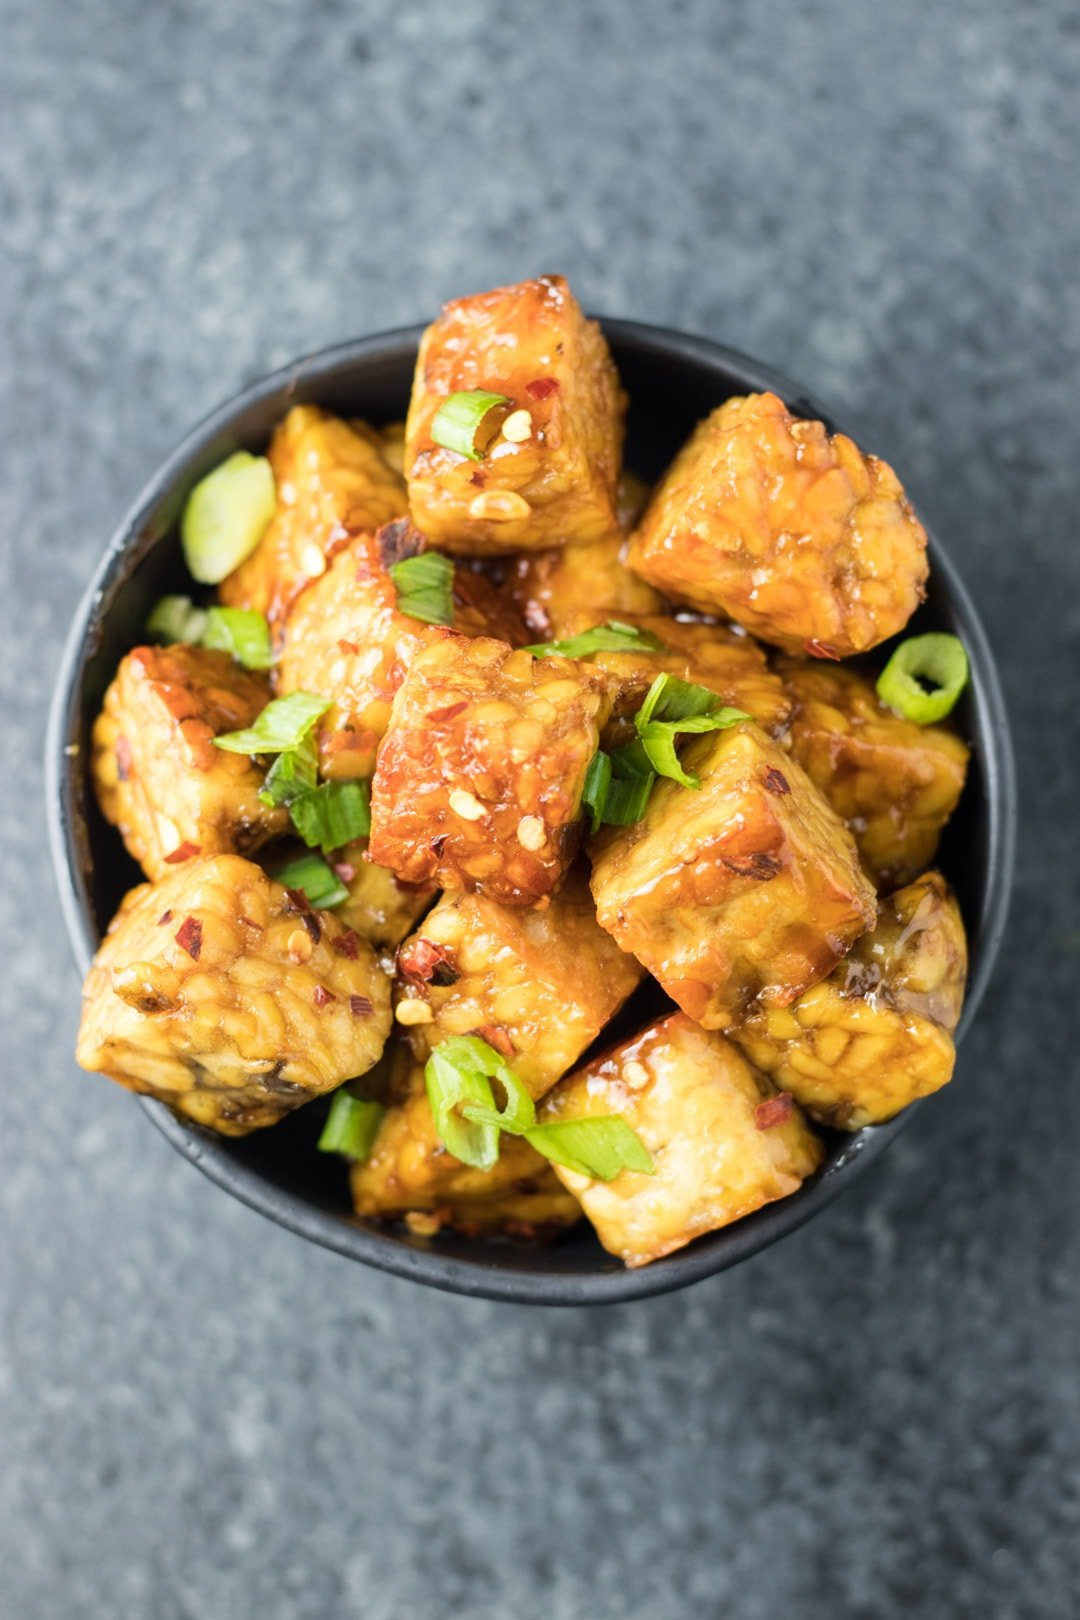 Fried tempeh cubes tossed in a maple-soy glaze and topped with sliced green onions